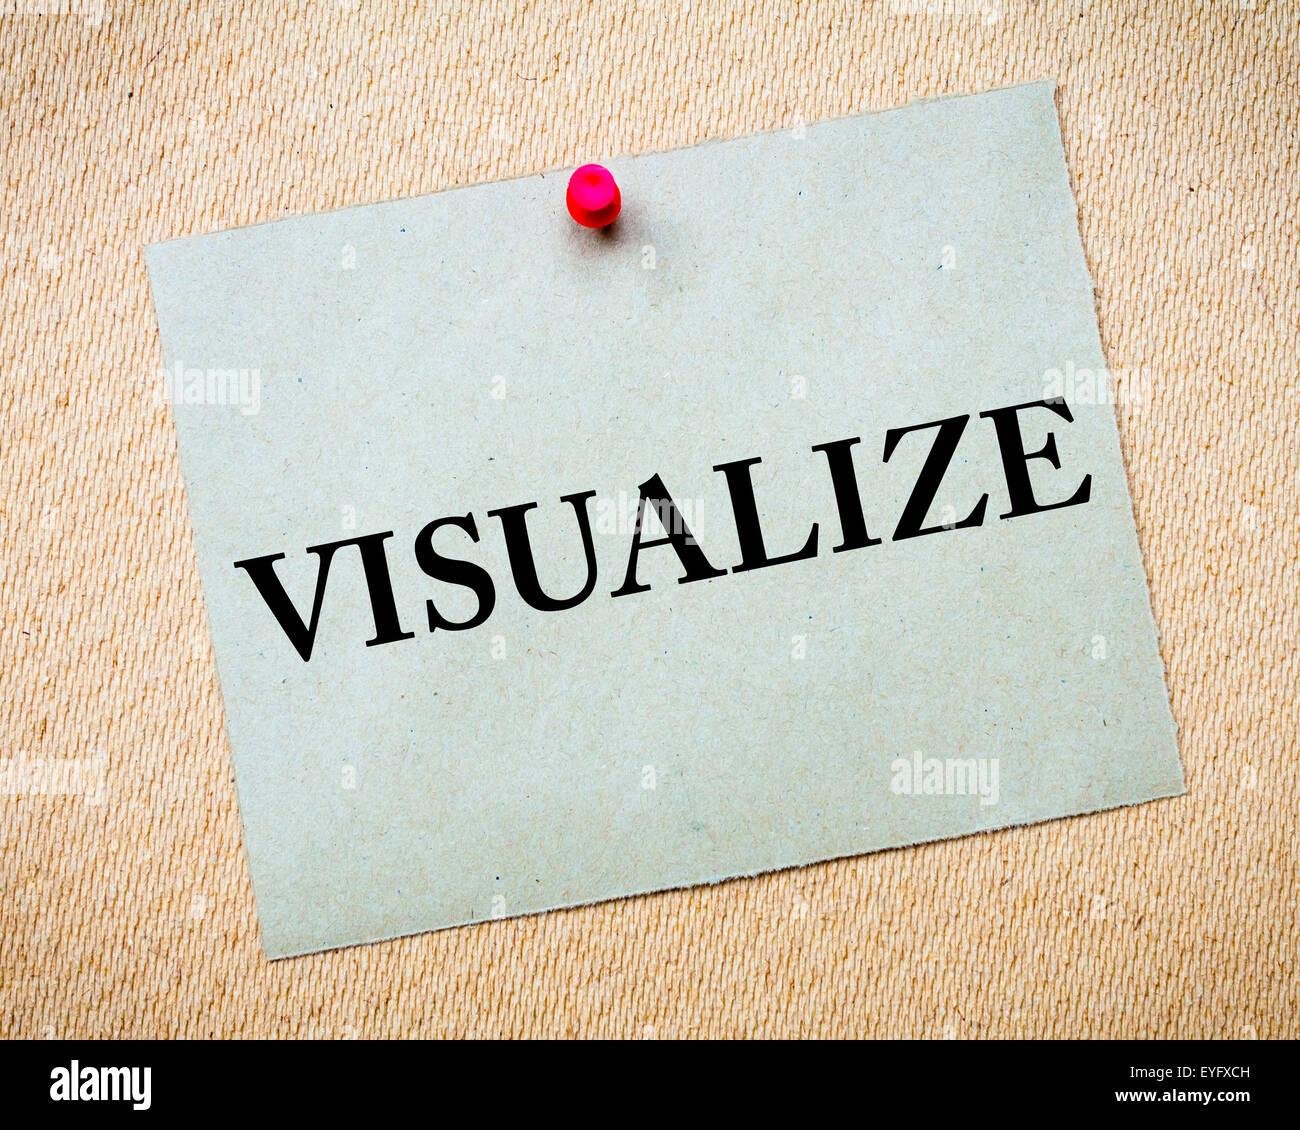 Visualize Message written on recycled paper note pinned on cork board. Motivational concept Image - Stock Image